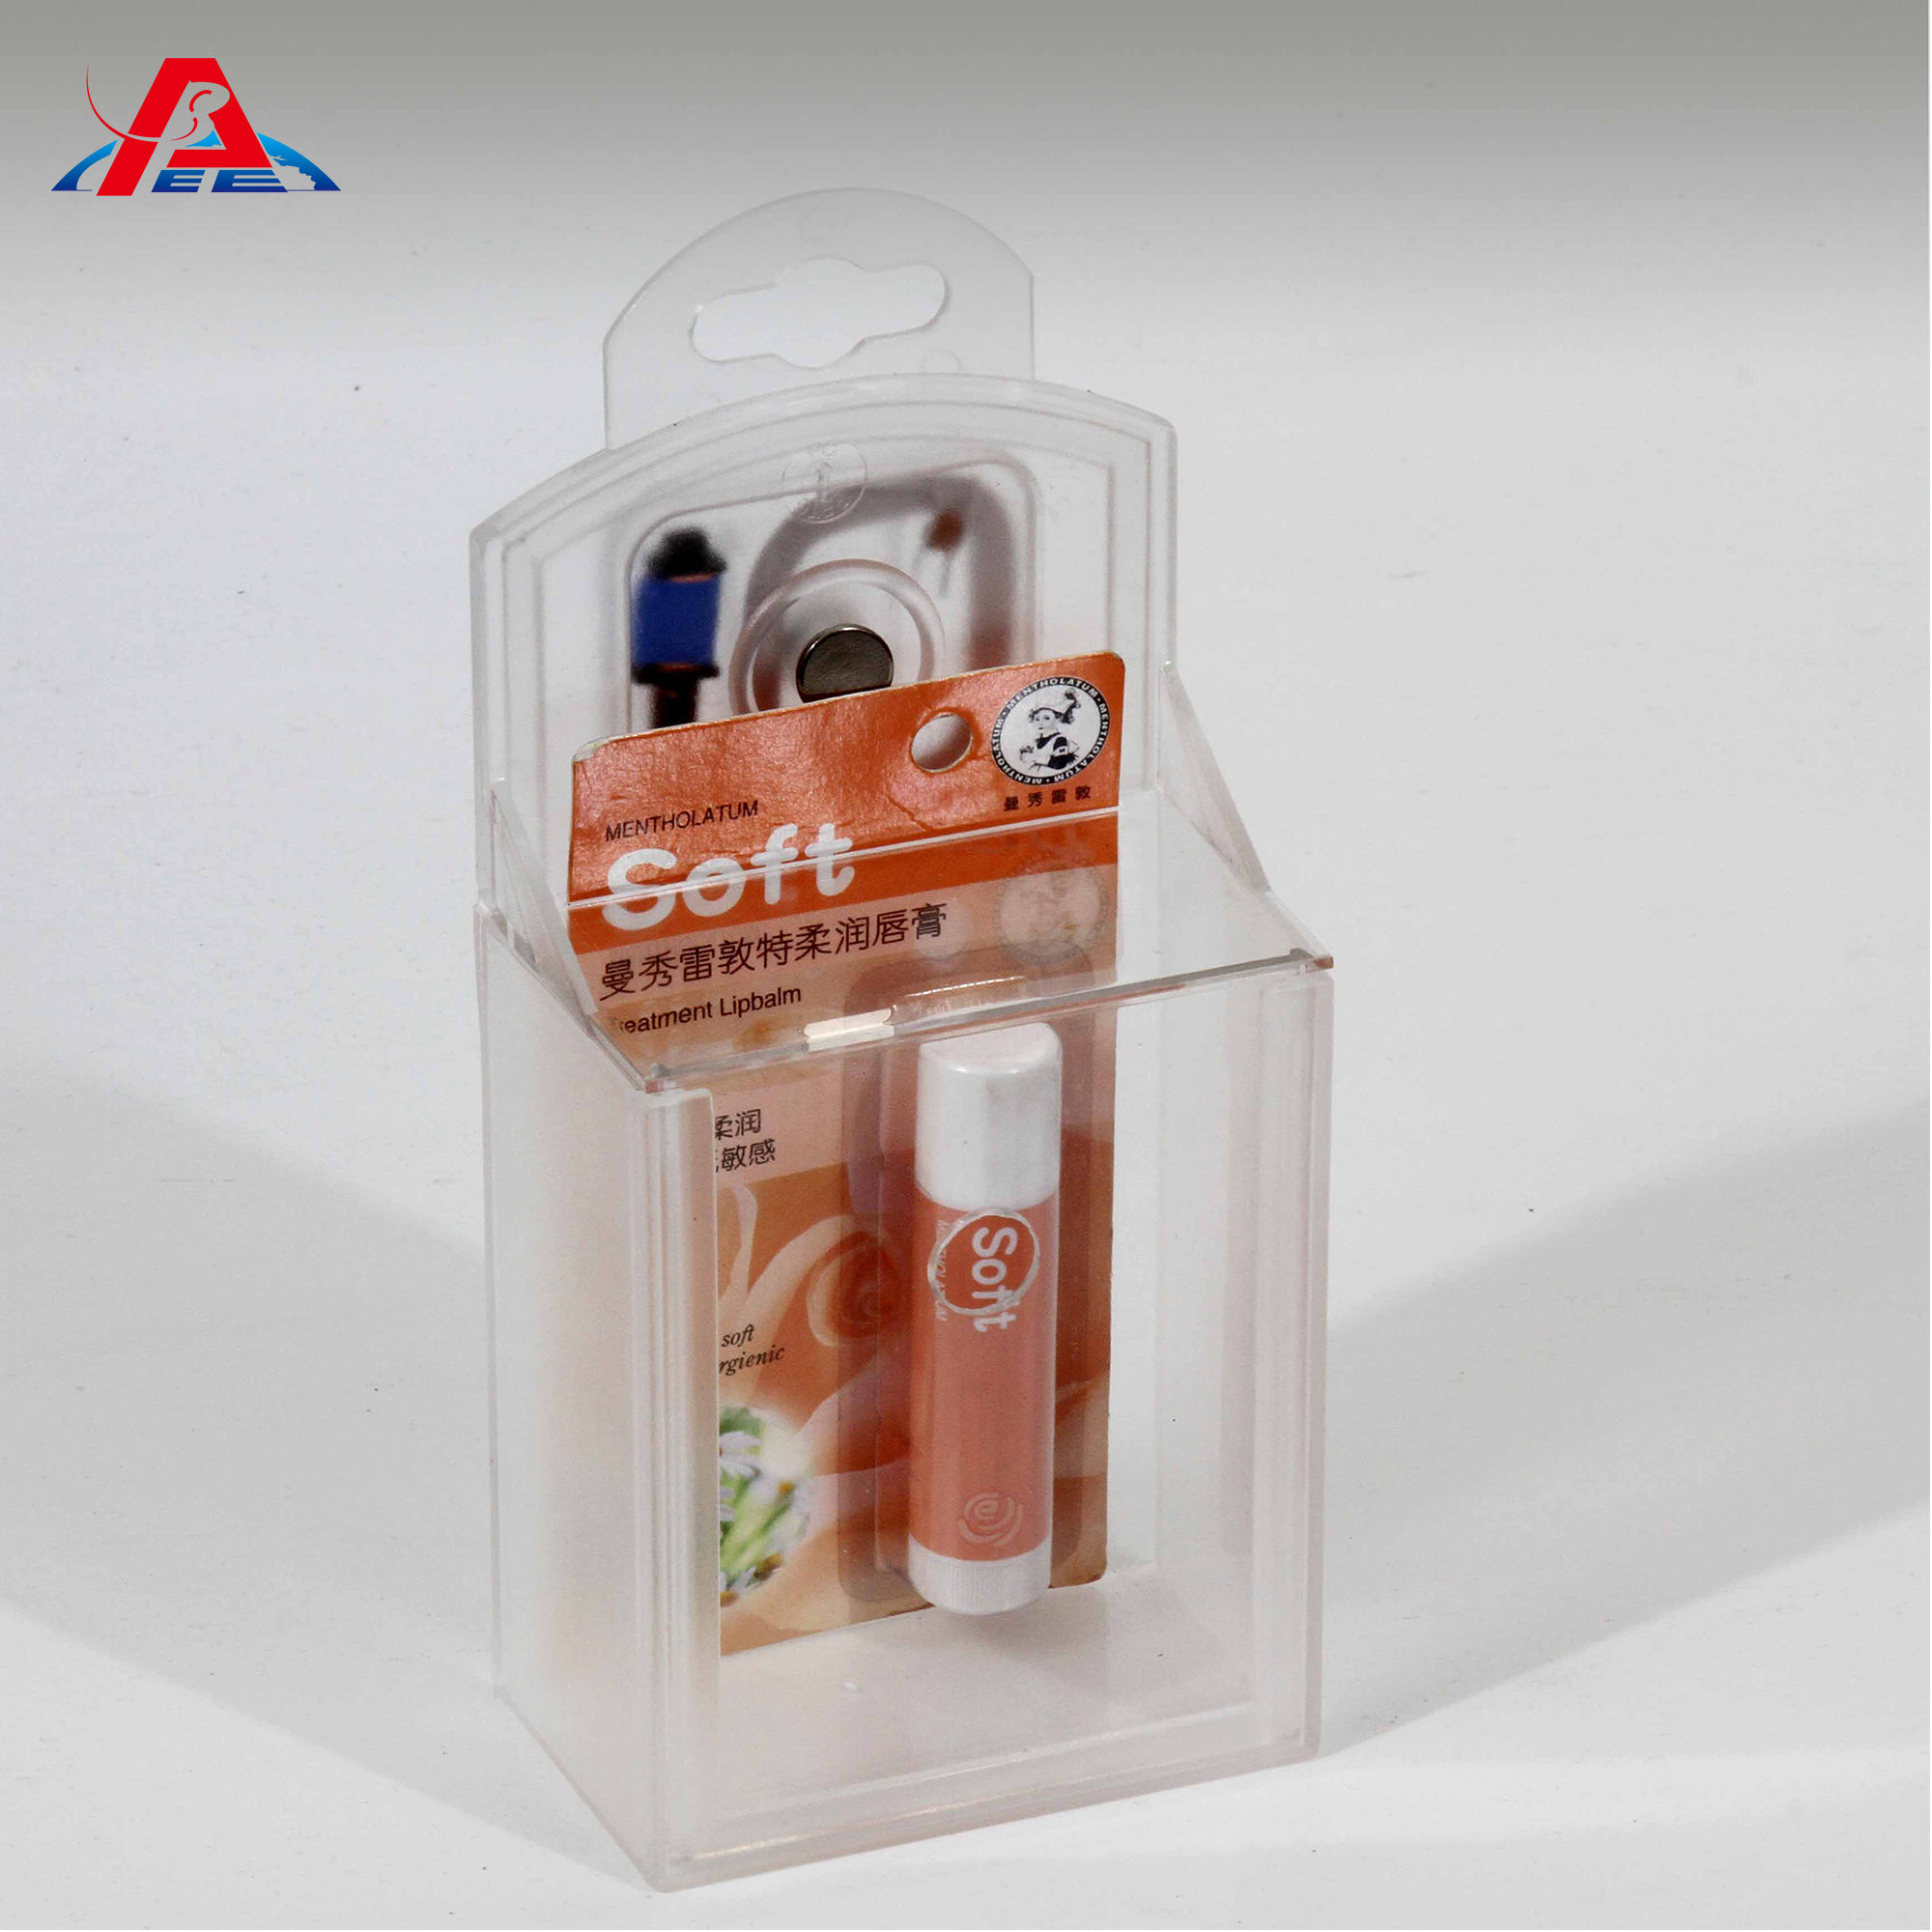 ABSEE ABS-3099 double battery safer box for anti theft